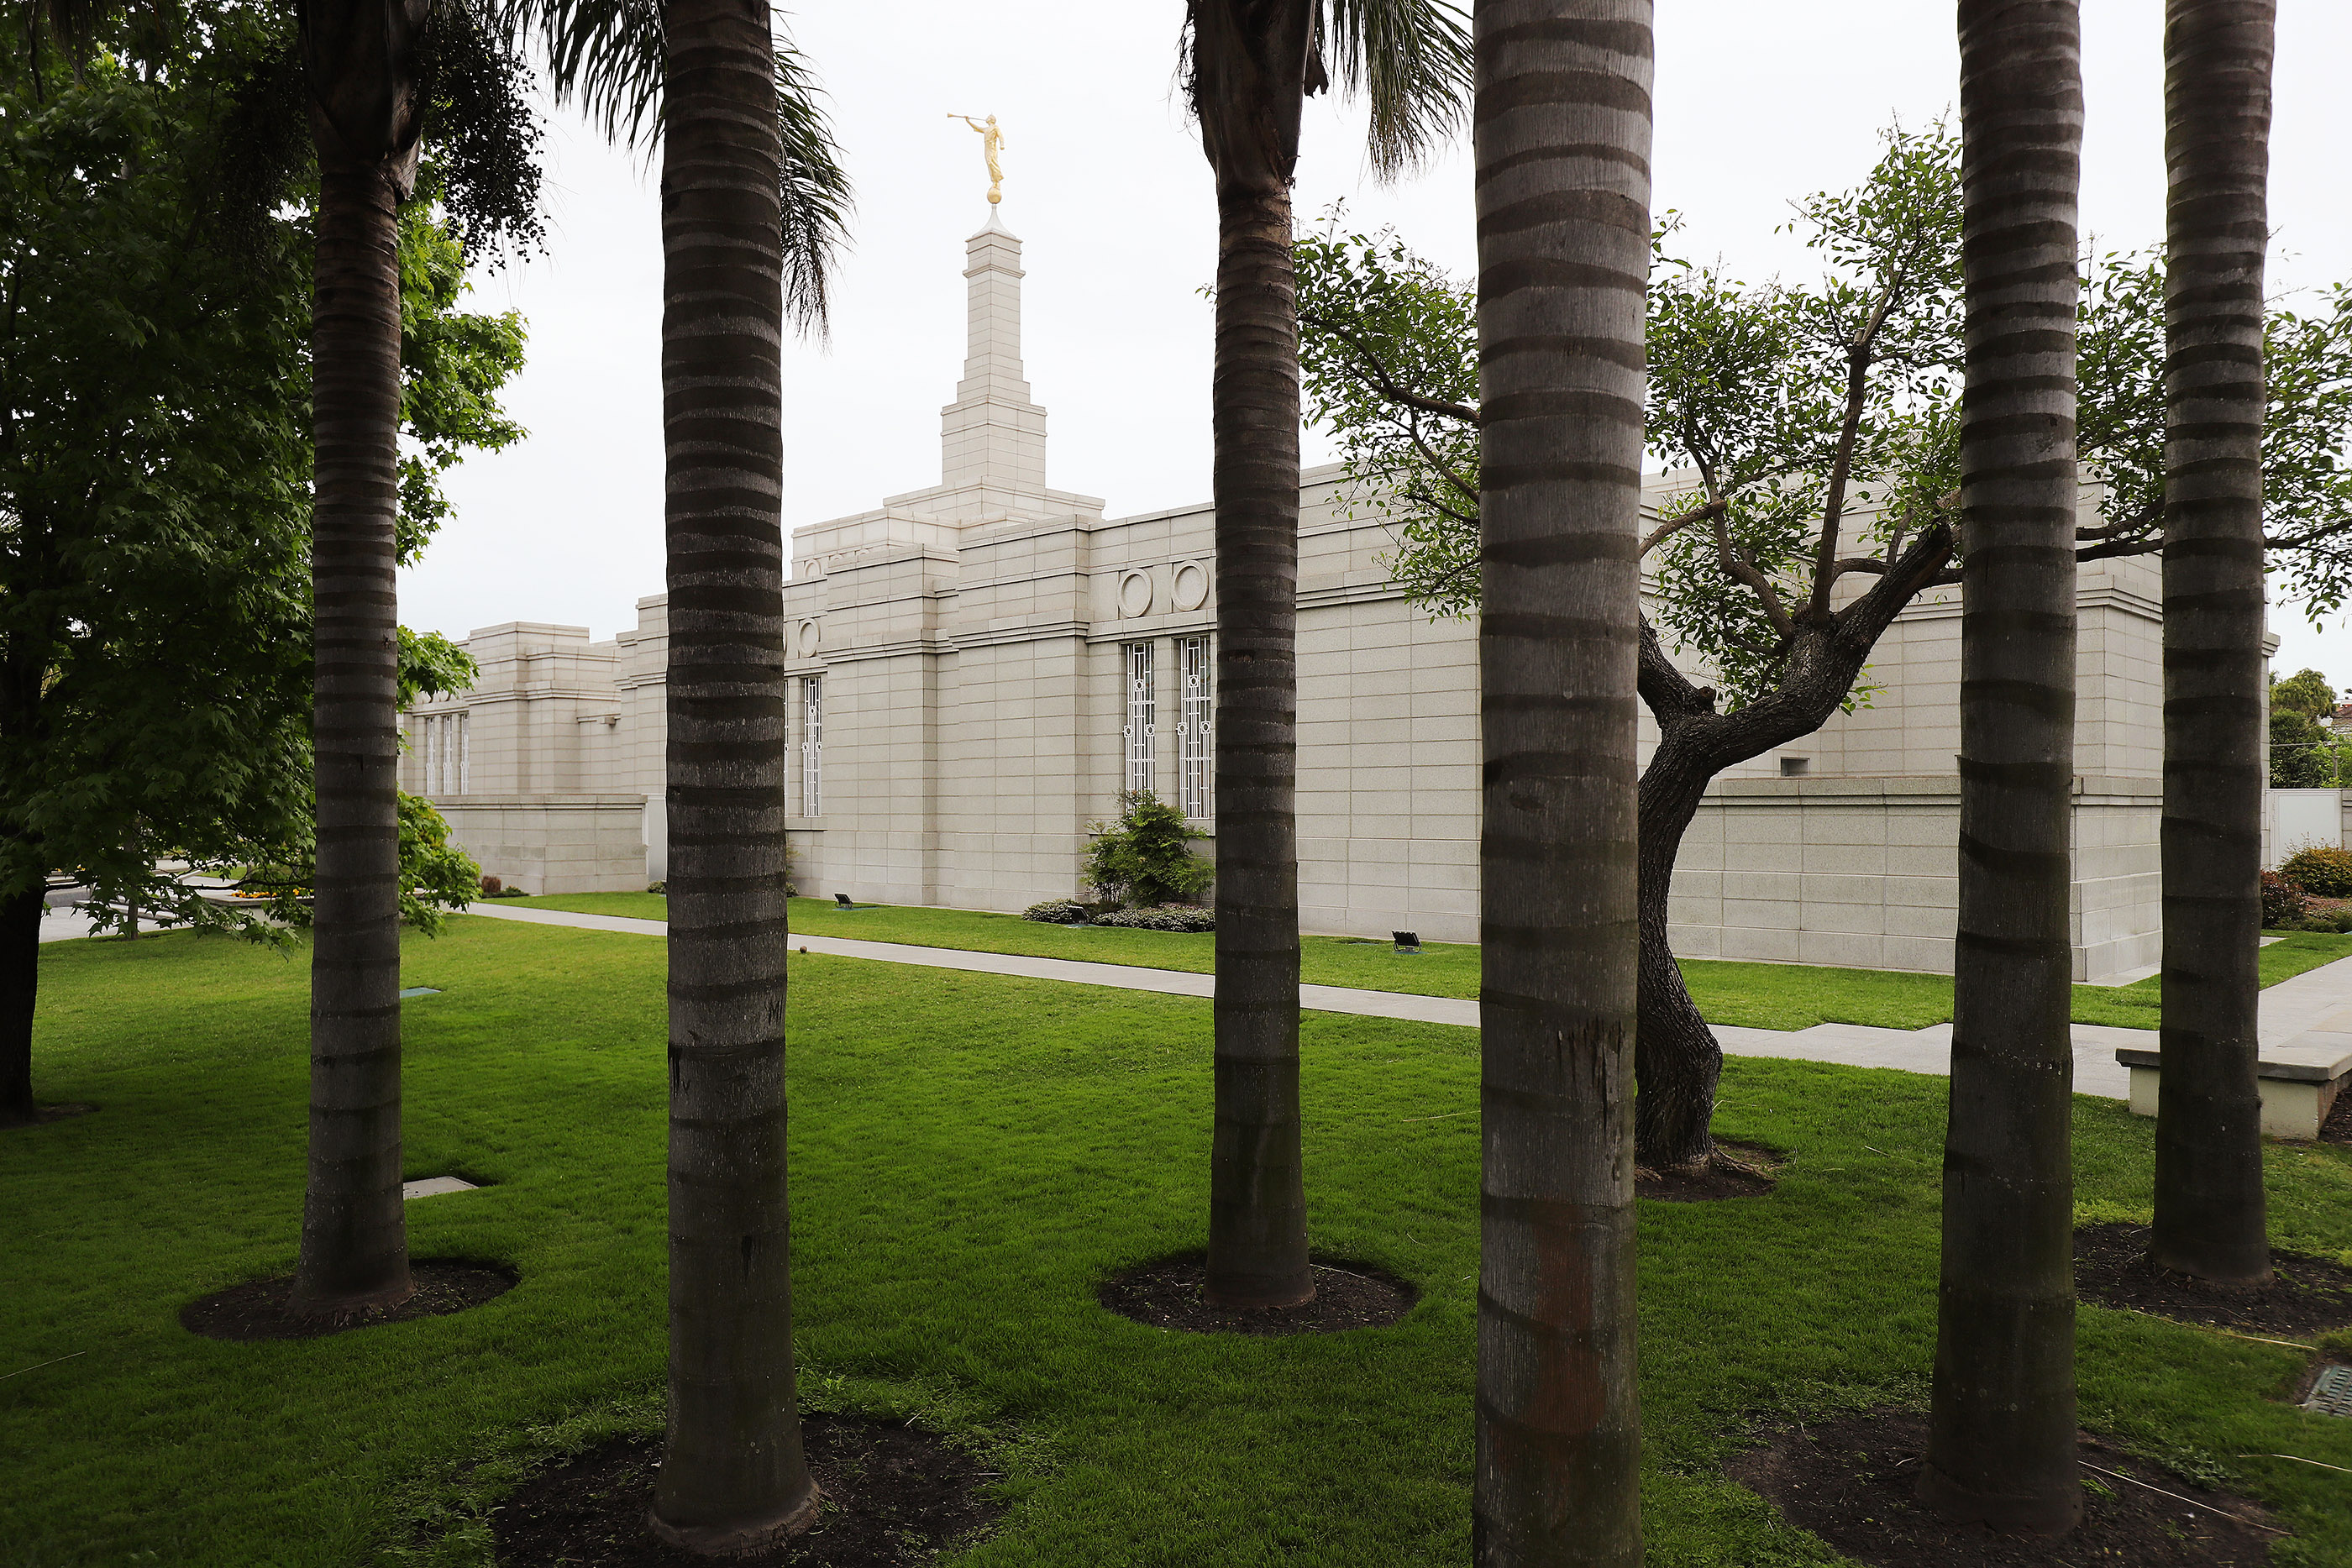 The Montevideo Temple of The Church of Jesus Christ of Latter-day Saints in Montevideo, Uruguay, on Oct. 24, 2018.